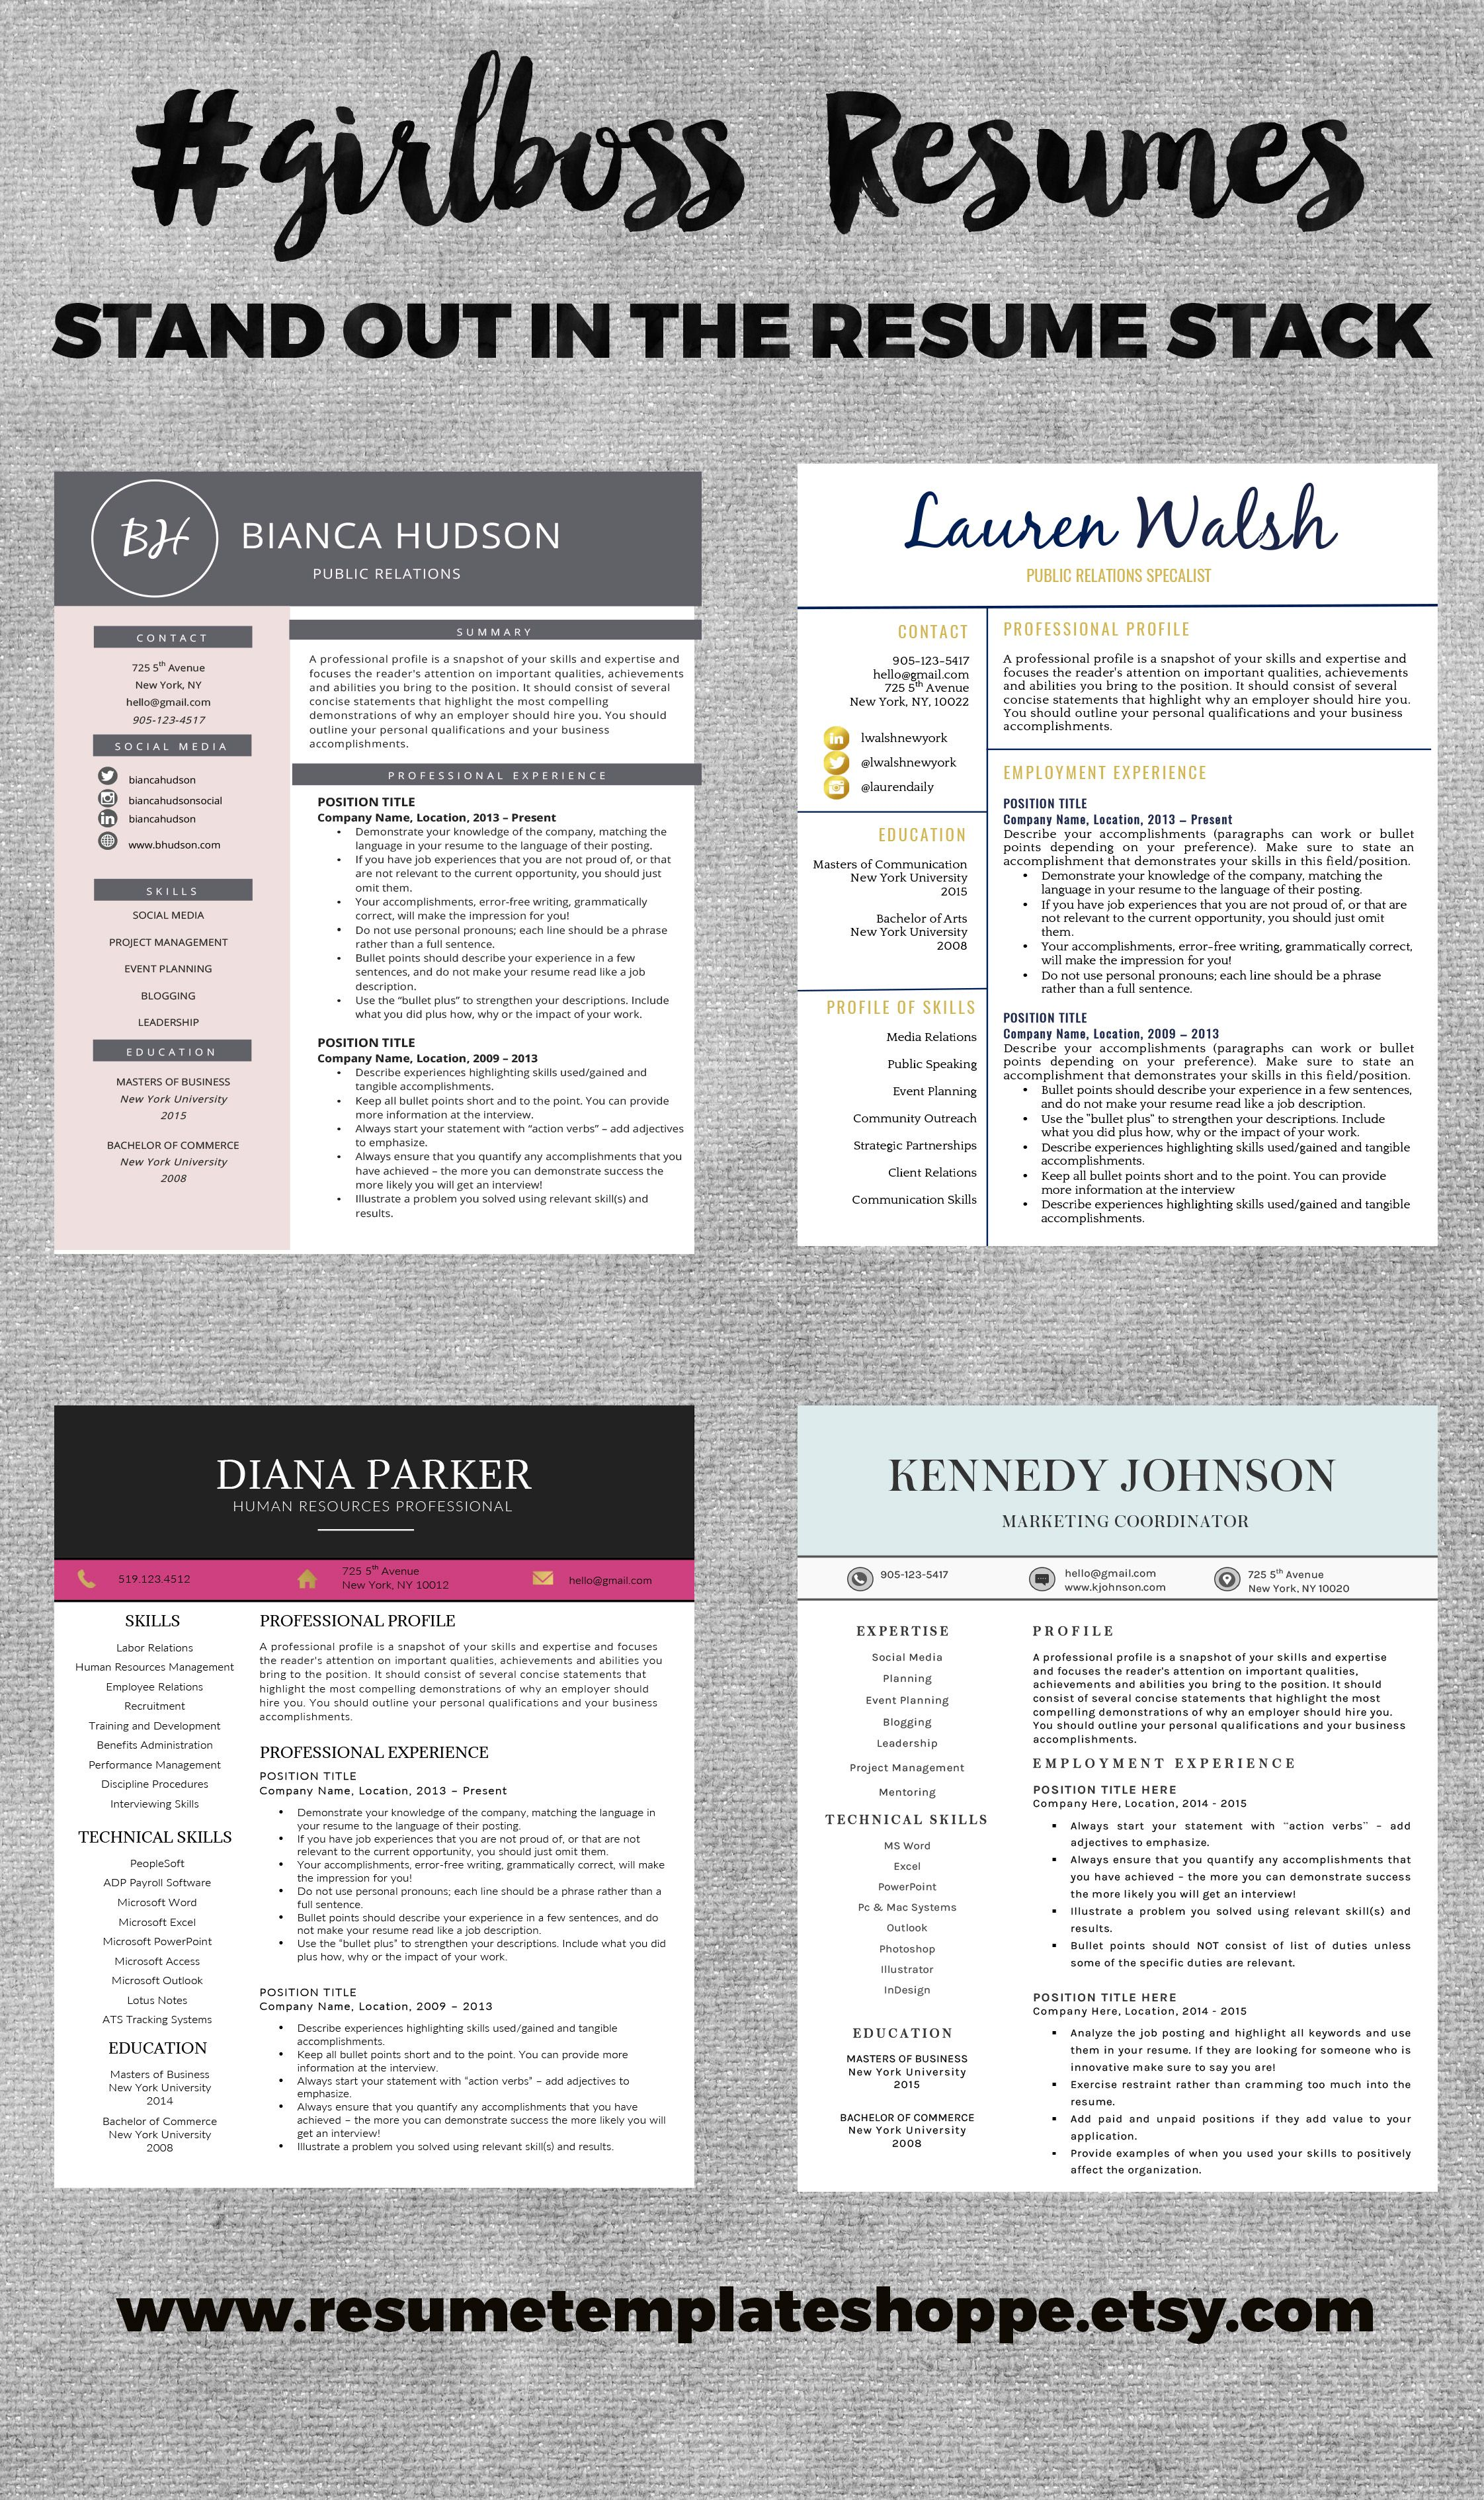 How To Make Your Resume Stand Out Custom Make Your Resume Stand Out With These Gorgeous Profe…  Resume